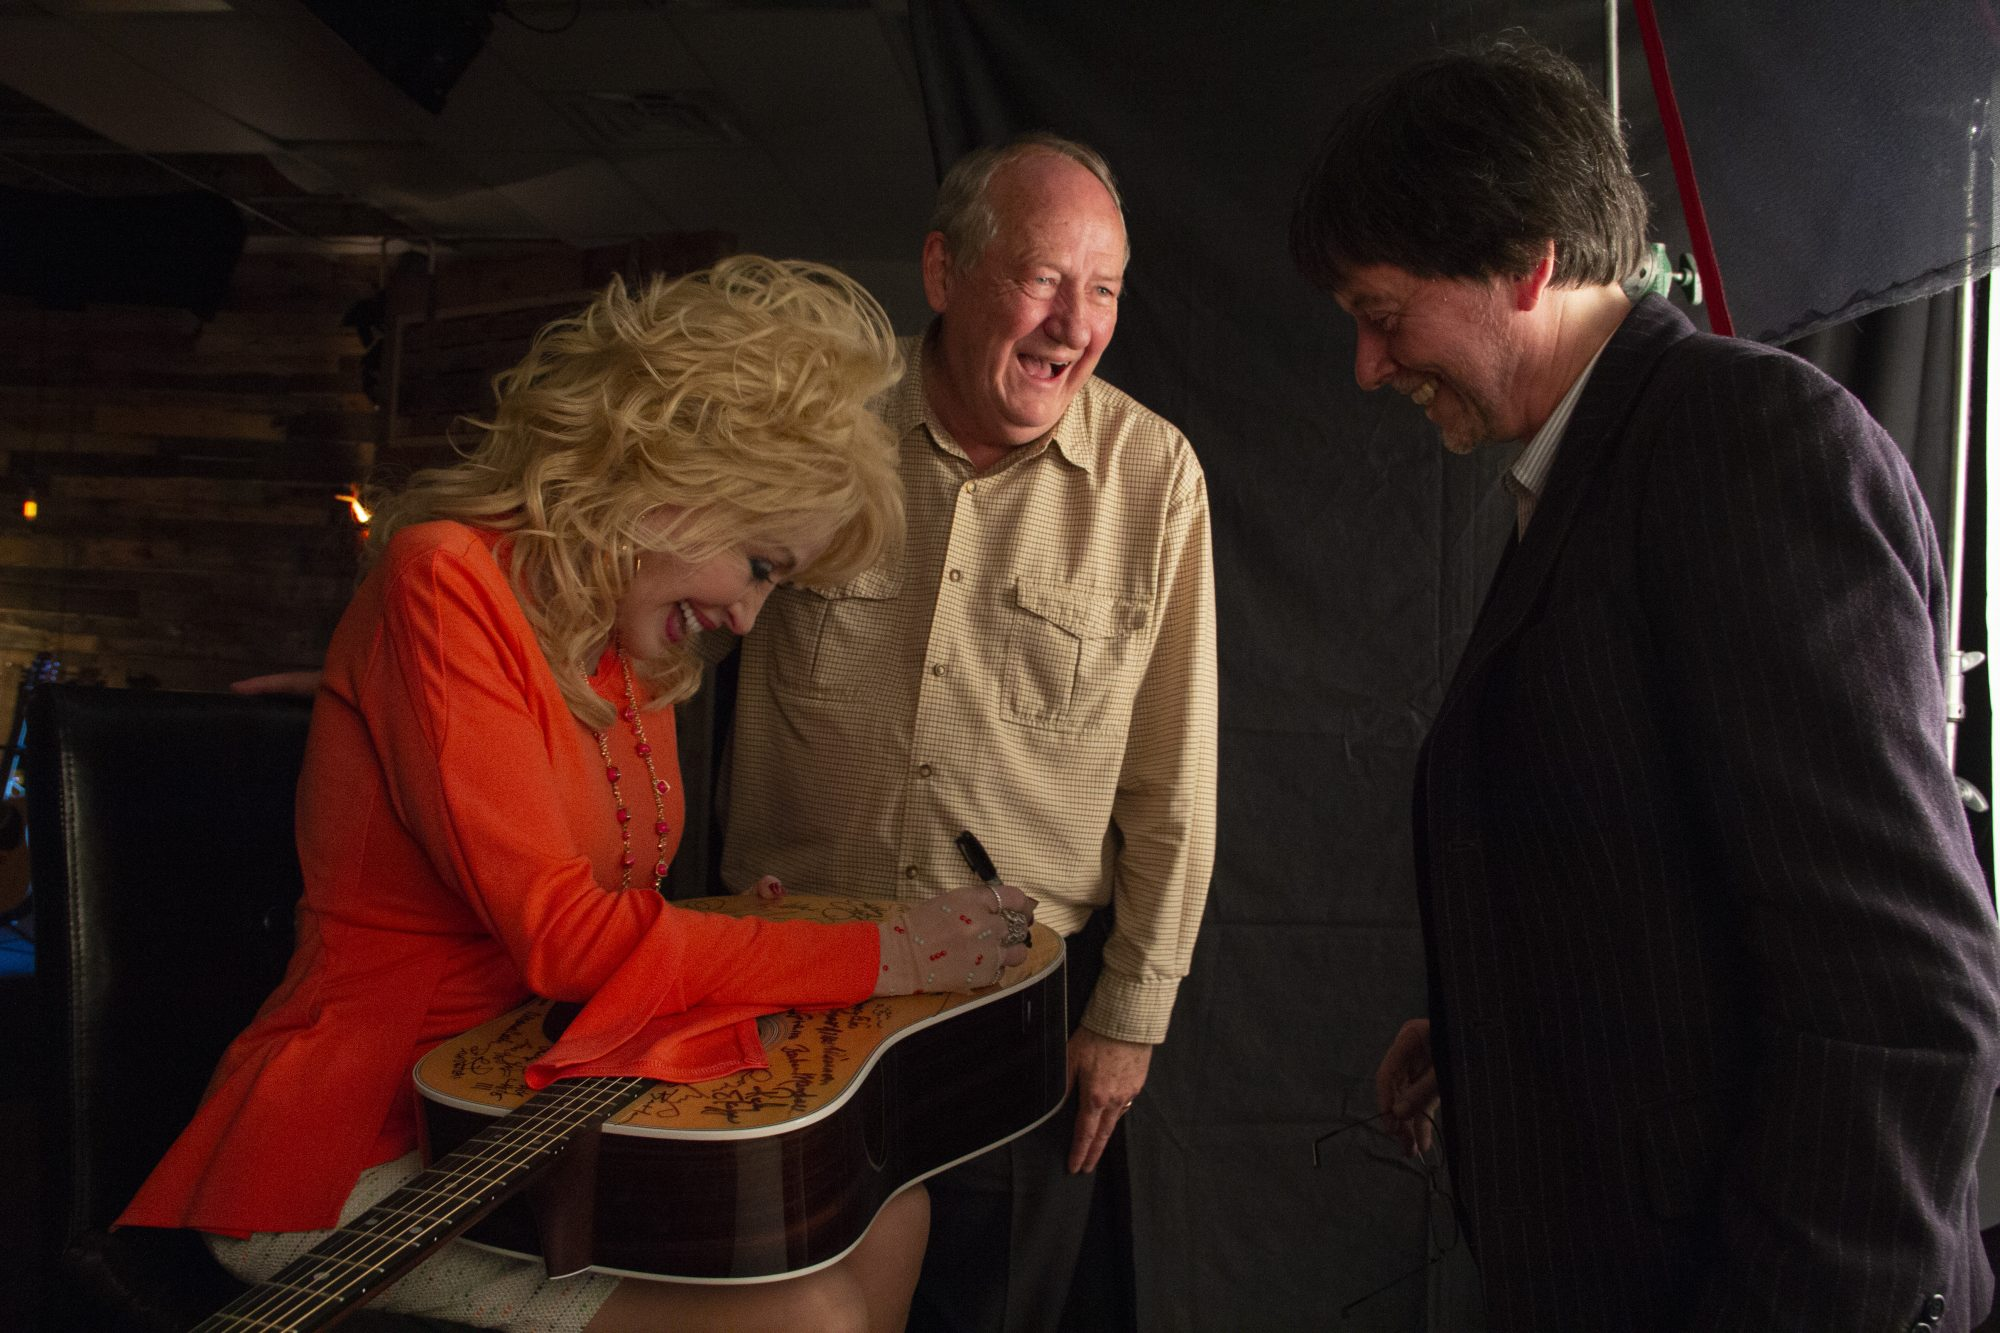 Dolly Parton Signs Guitar With Dayton Duncan and Ken Burns